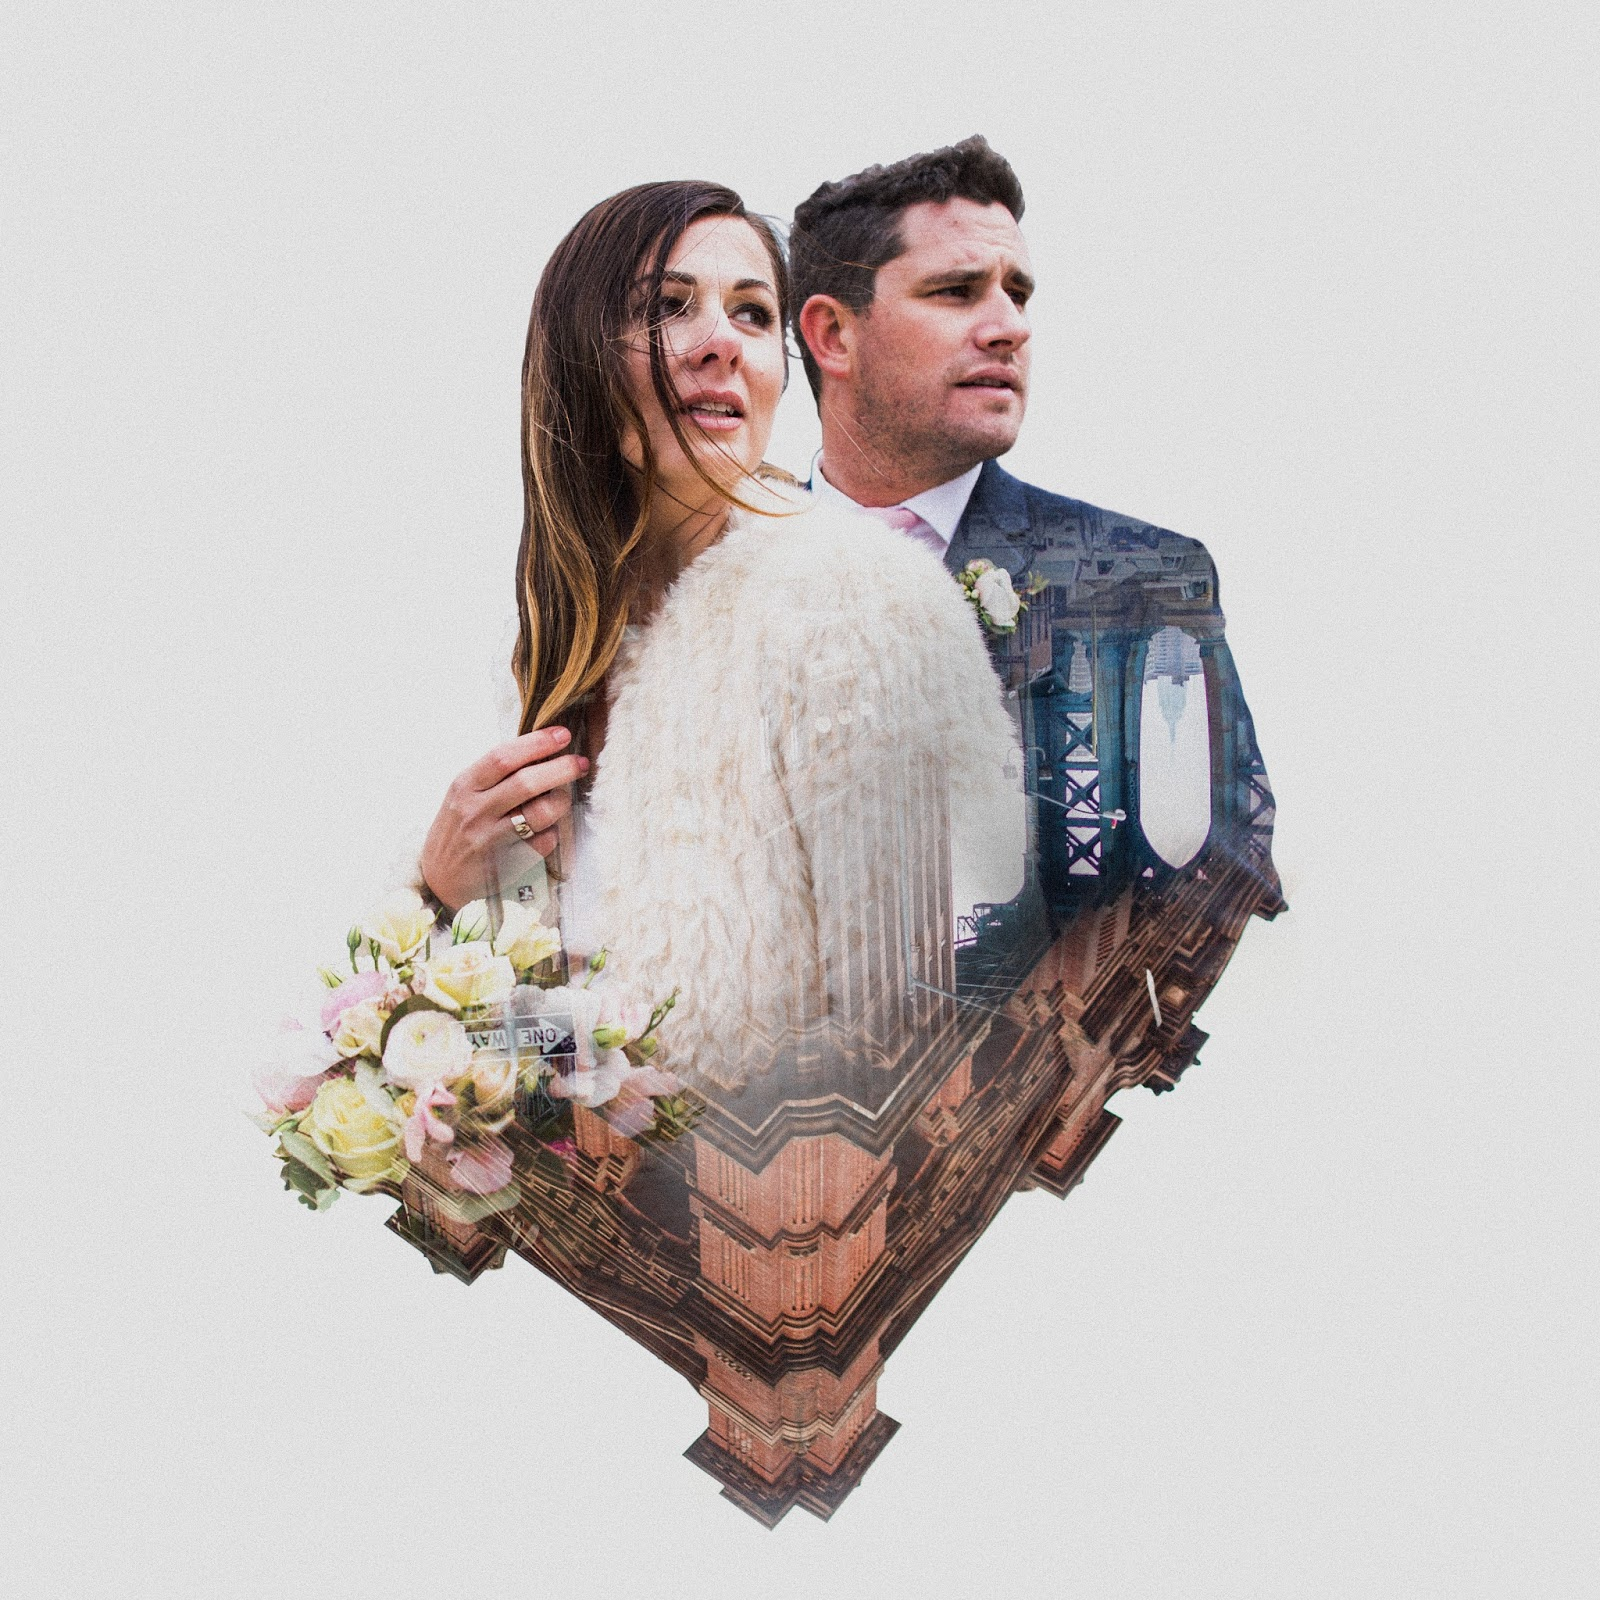 Double exposure wedding portrait | NYC Documentary wedding photography by Cassie Castellaw